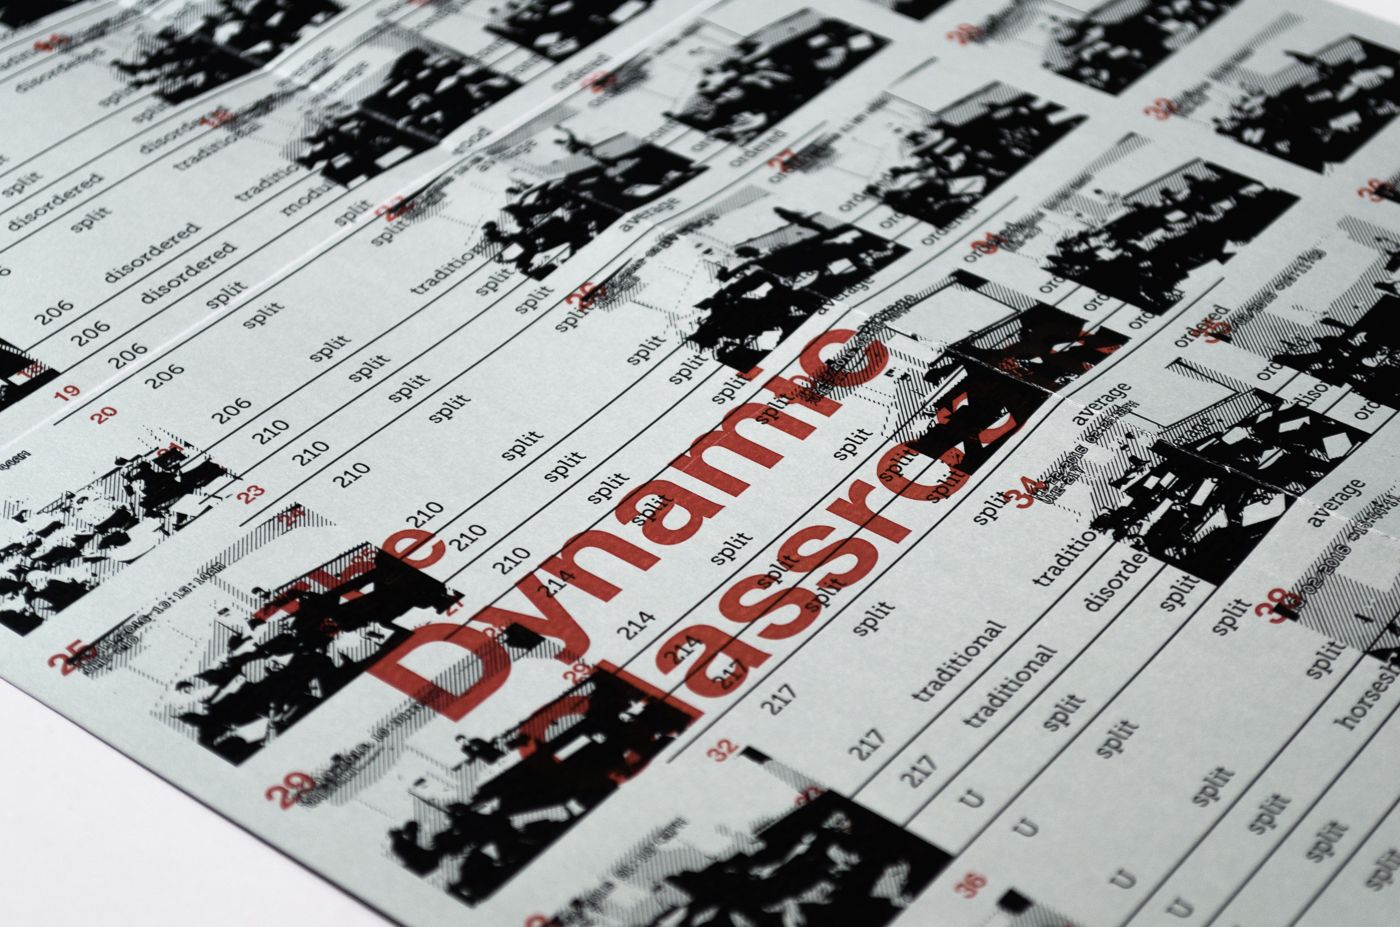 """Detail of The Dynamic Classroom poster design. A grid of black photos of classrooms is printed on silver paper. """"The Dynamic Classroom"""" is overprinted in red ink."""